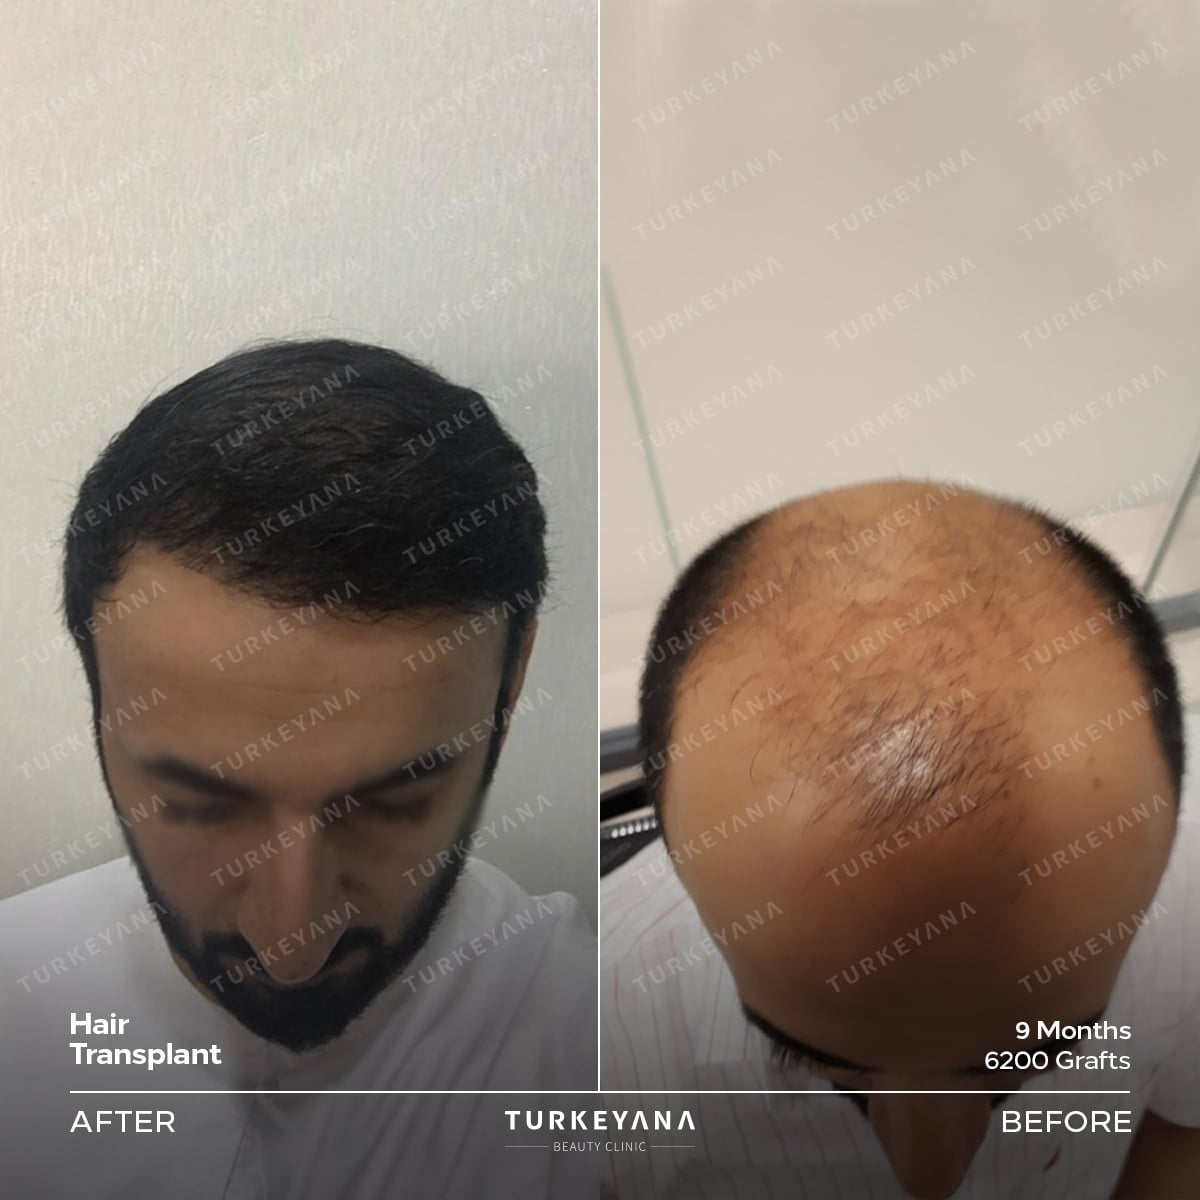 Hair Transplantation For Men in Turkey, Hair Transplantation for men in Turkey